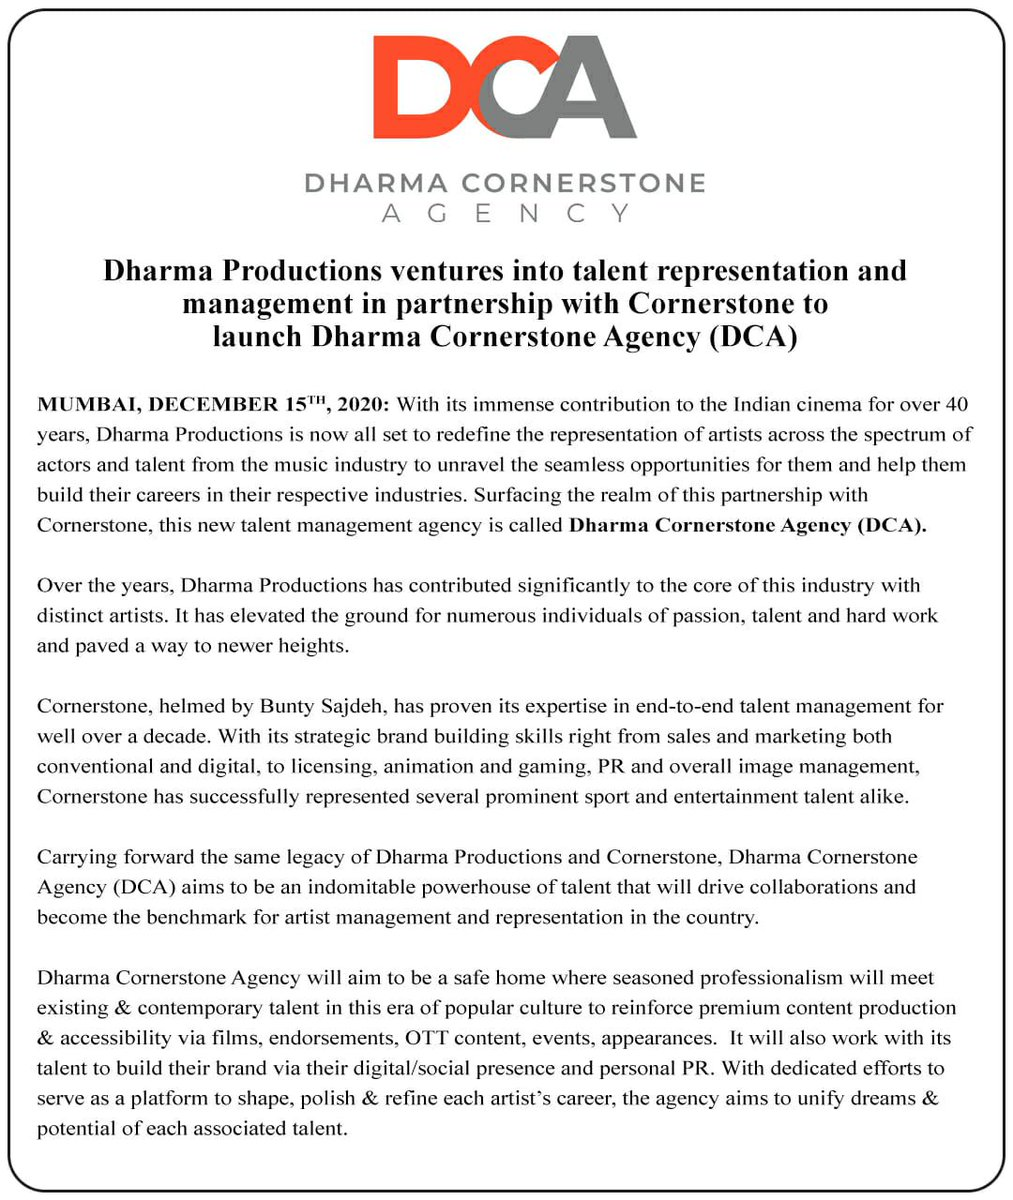 Super delighted to announce our newest venture, a talent management agency, Dharma Cornerstone Agency (DCA).@apoorvamehta18 @buntysajdeh